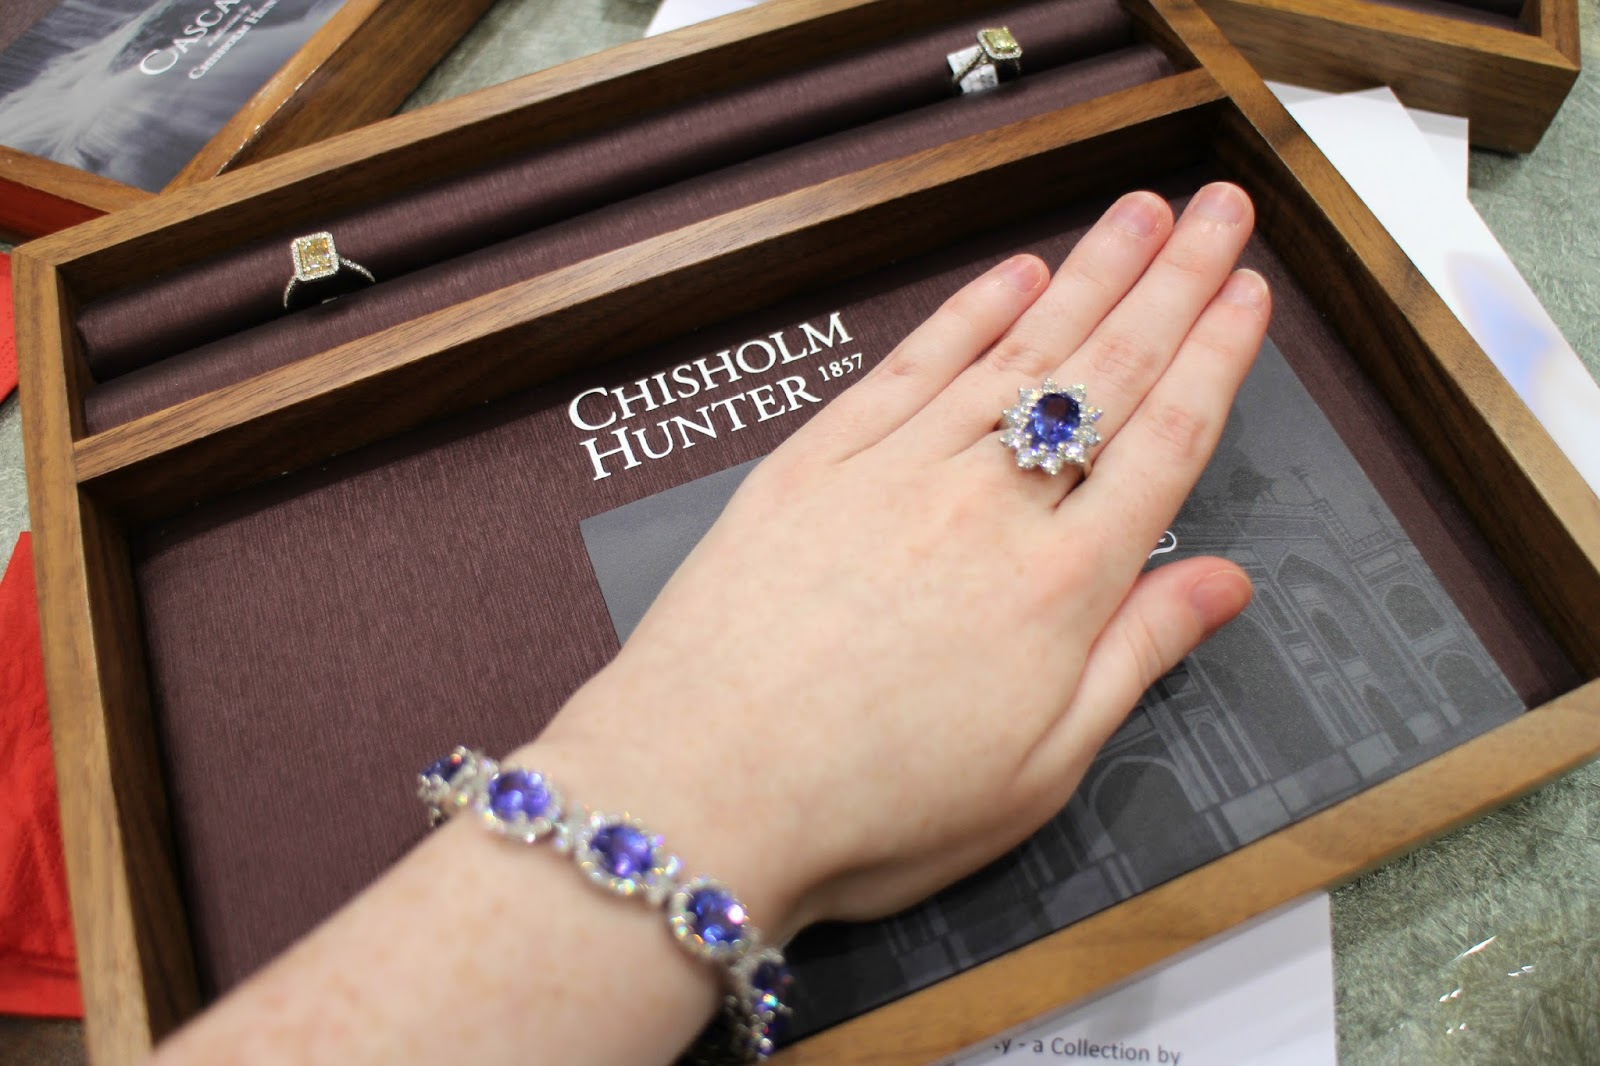 Chisholm Hunter Tanzanite